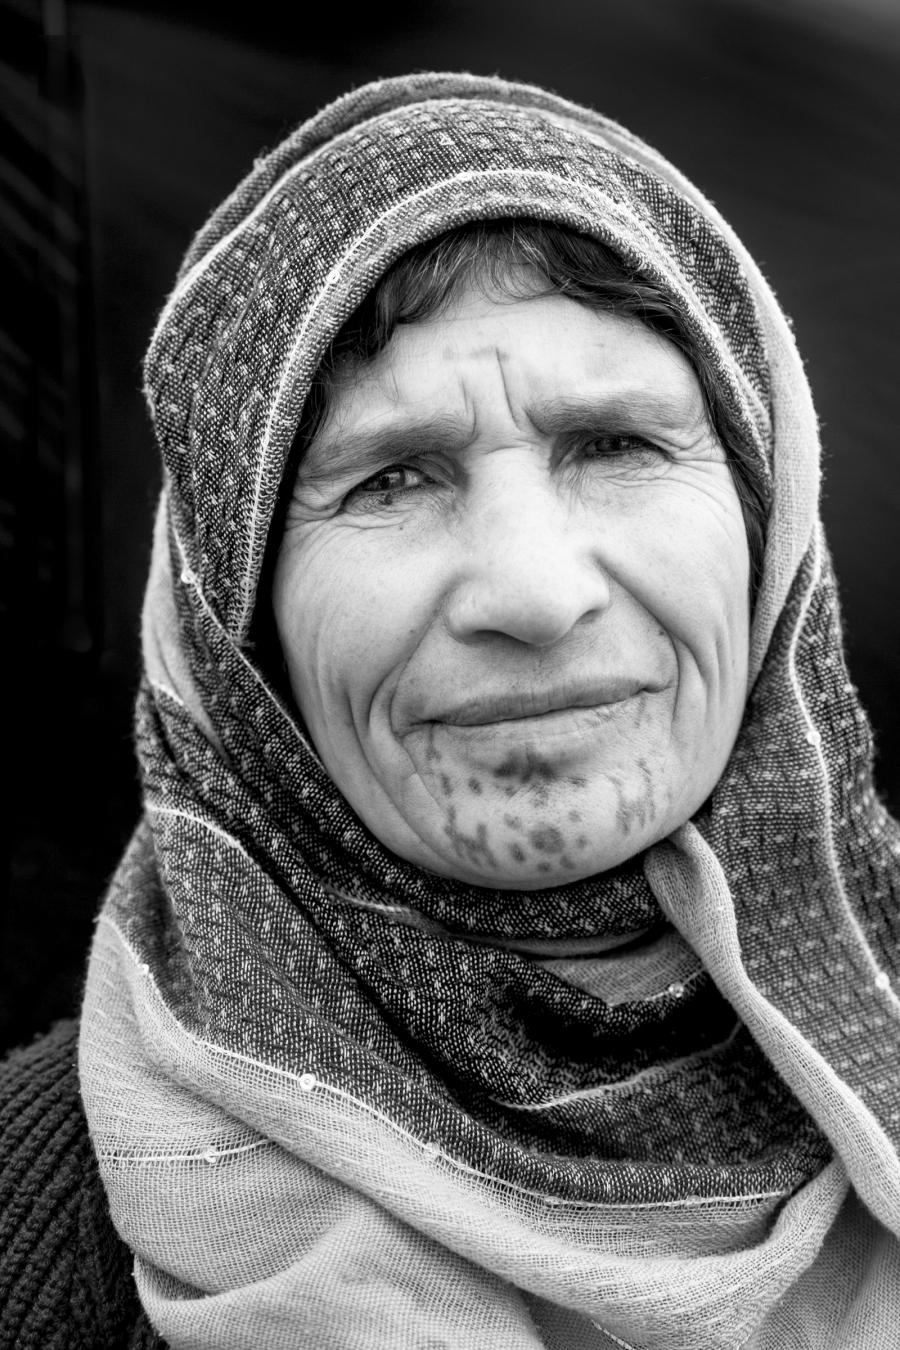 Amina Saleh--60 year-old woman from Musko, a village of Kobani, at Bulgur Fabrikası refugee camp in Suruc, Turkey, October 25, 2014. Mother of 6, she got her face tattooed when she was about 10 years old.